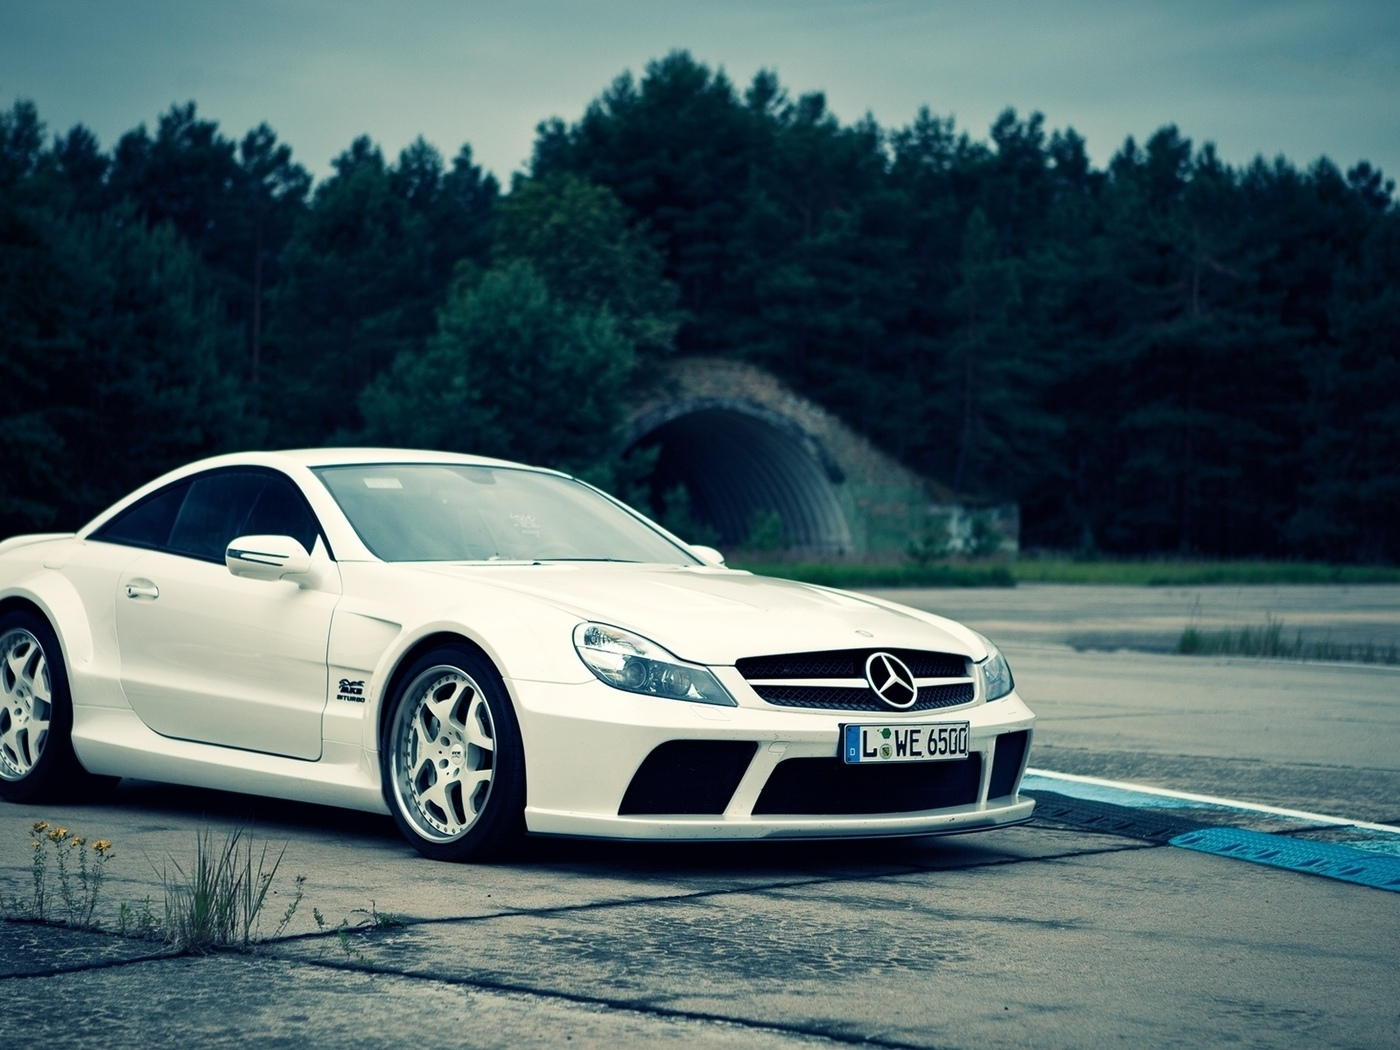 суперкар, обои авто, walloper, cars, mercedes, wallpapers, sls amg, supercars, auto, cars wall